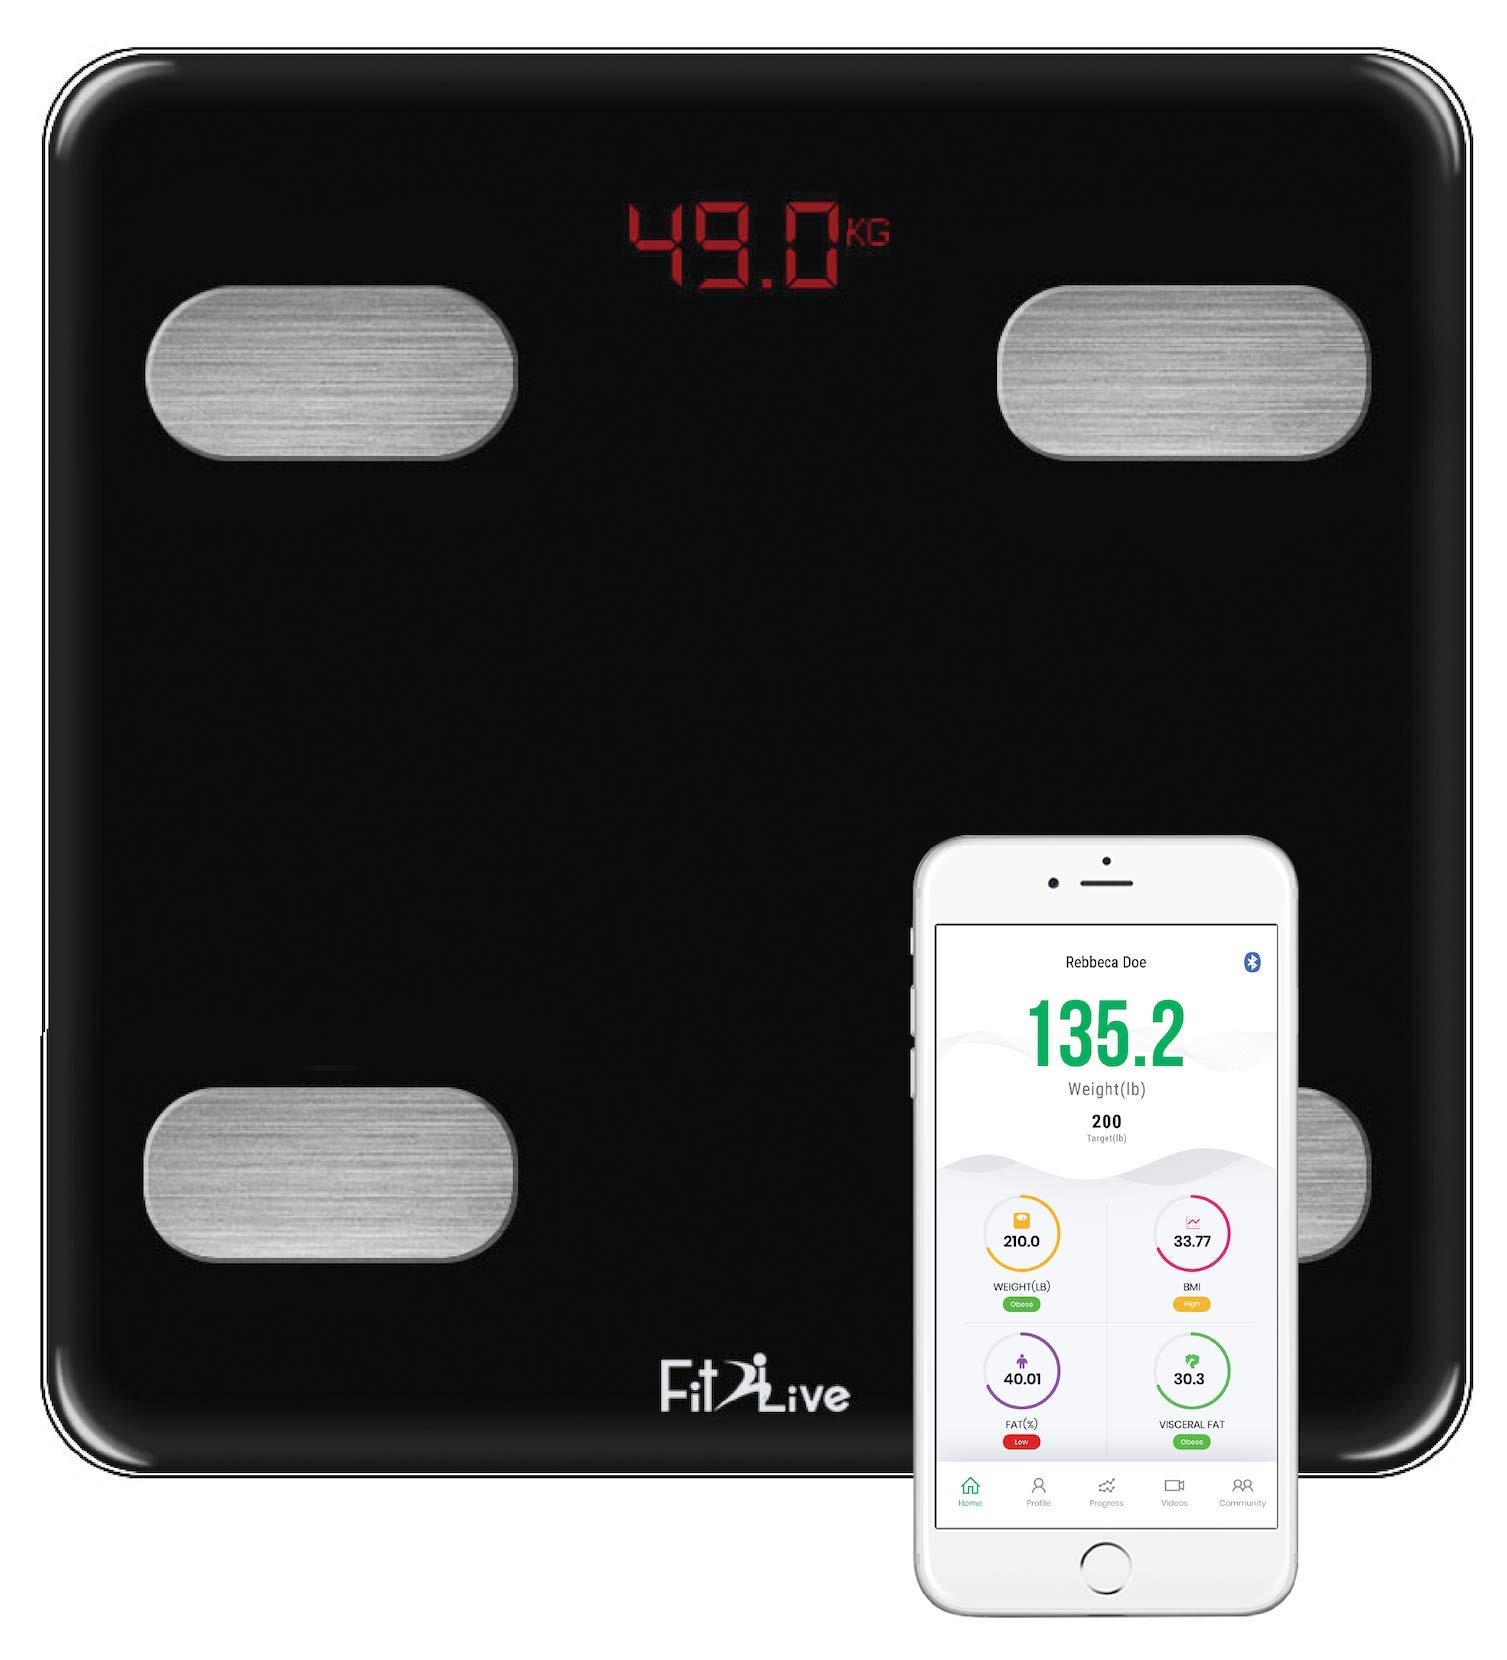 Bluetooth Smart Body Fat Scale-Fit2Live Digital Bathroom Weight Scale, Body Composition Analyzer, USB Rechargeable, with iOS and Android App for Body Weight, Fat, Water, BMI, BMR, Muscle Mass (Black)